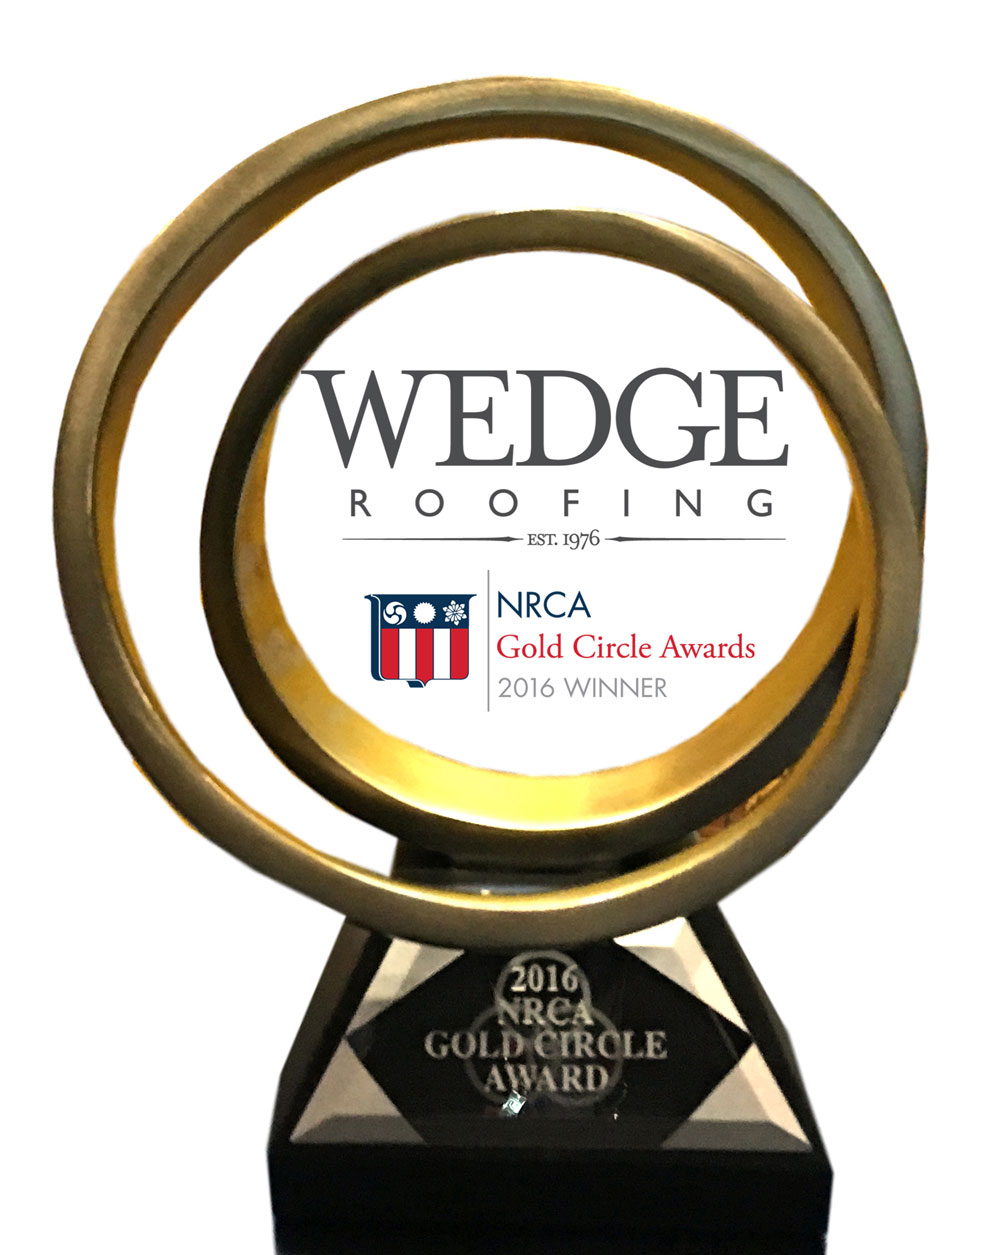 National Best Spray Foam Roofing Award For Wedge Roofing